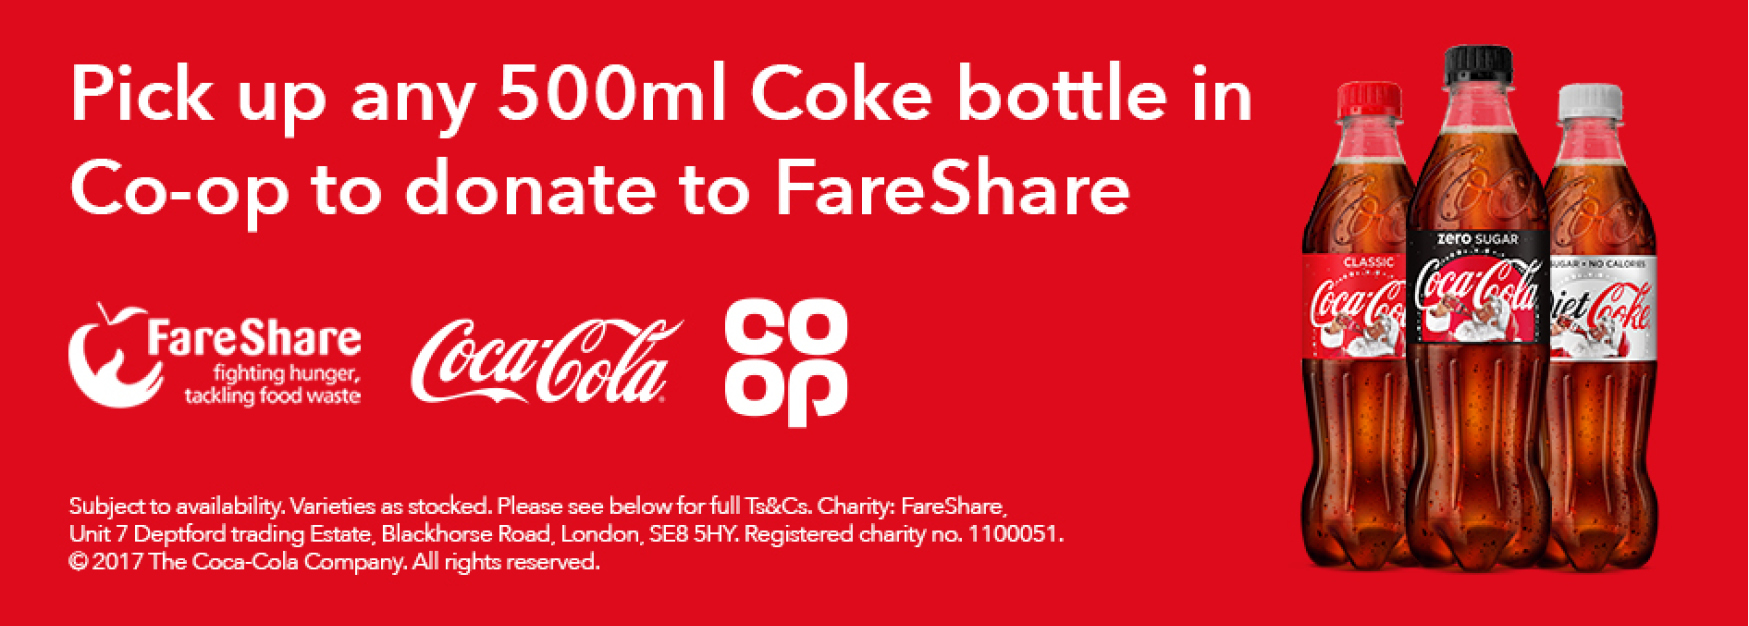 Coca-Cola Co-op Promotion with FareShare